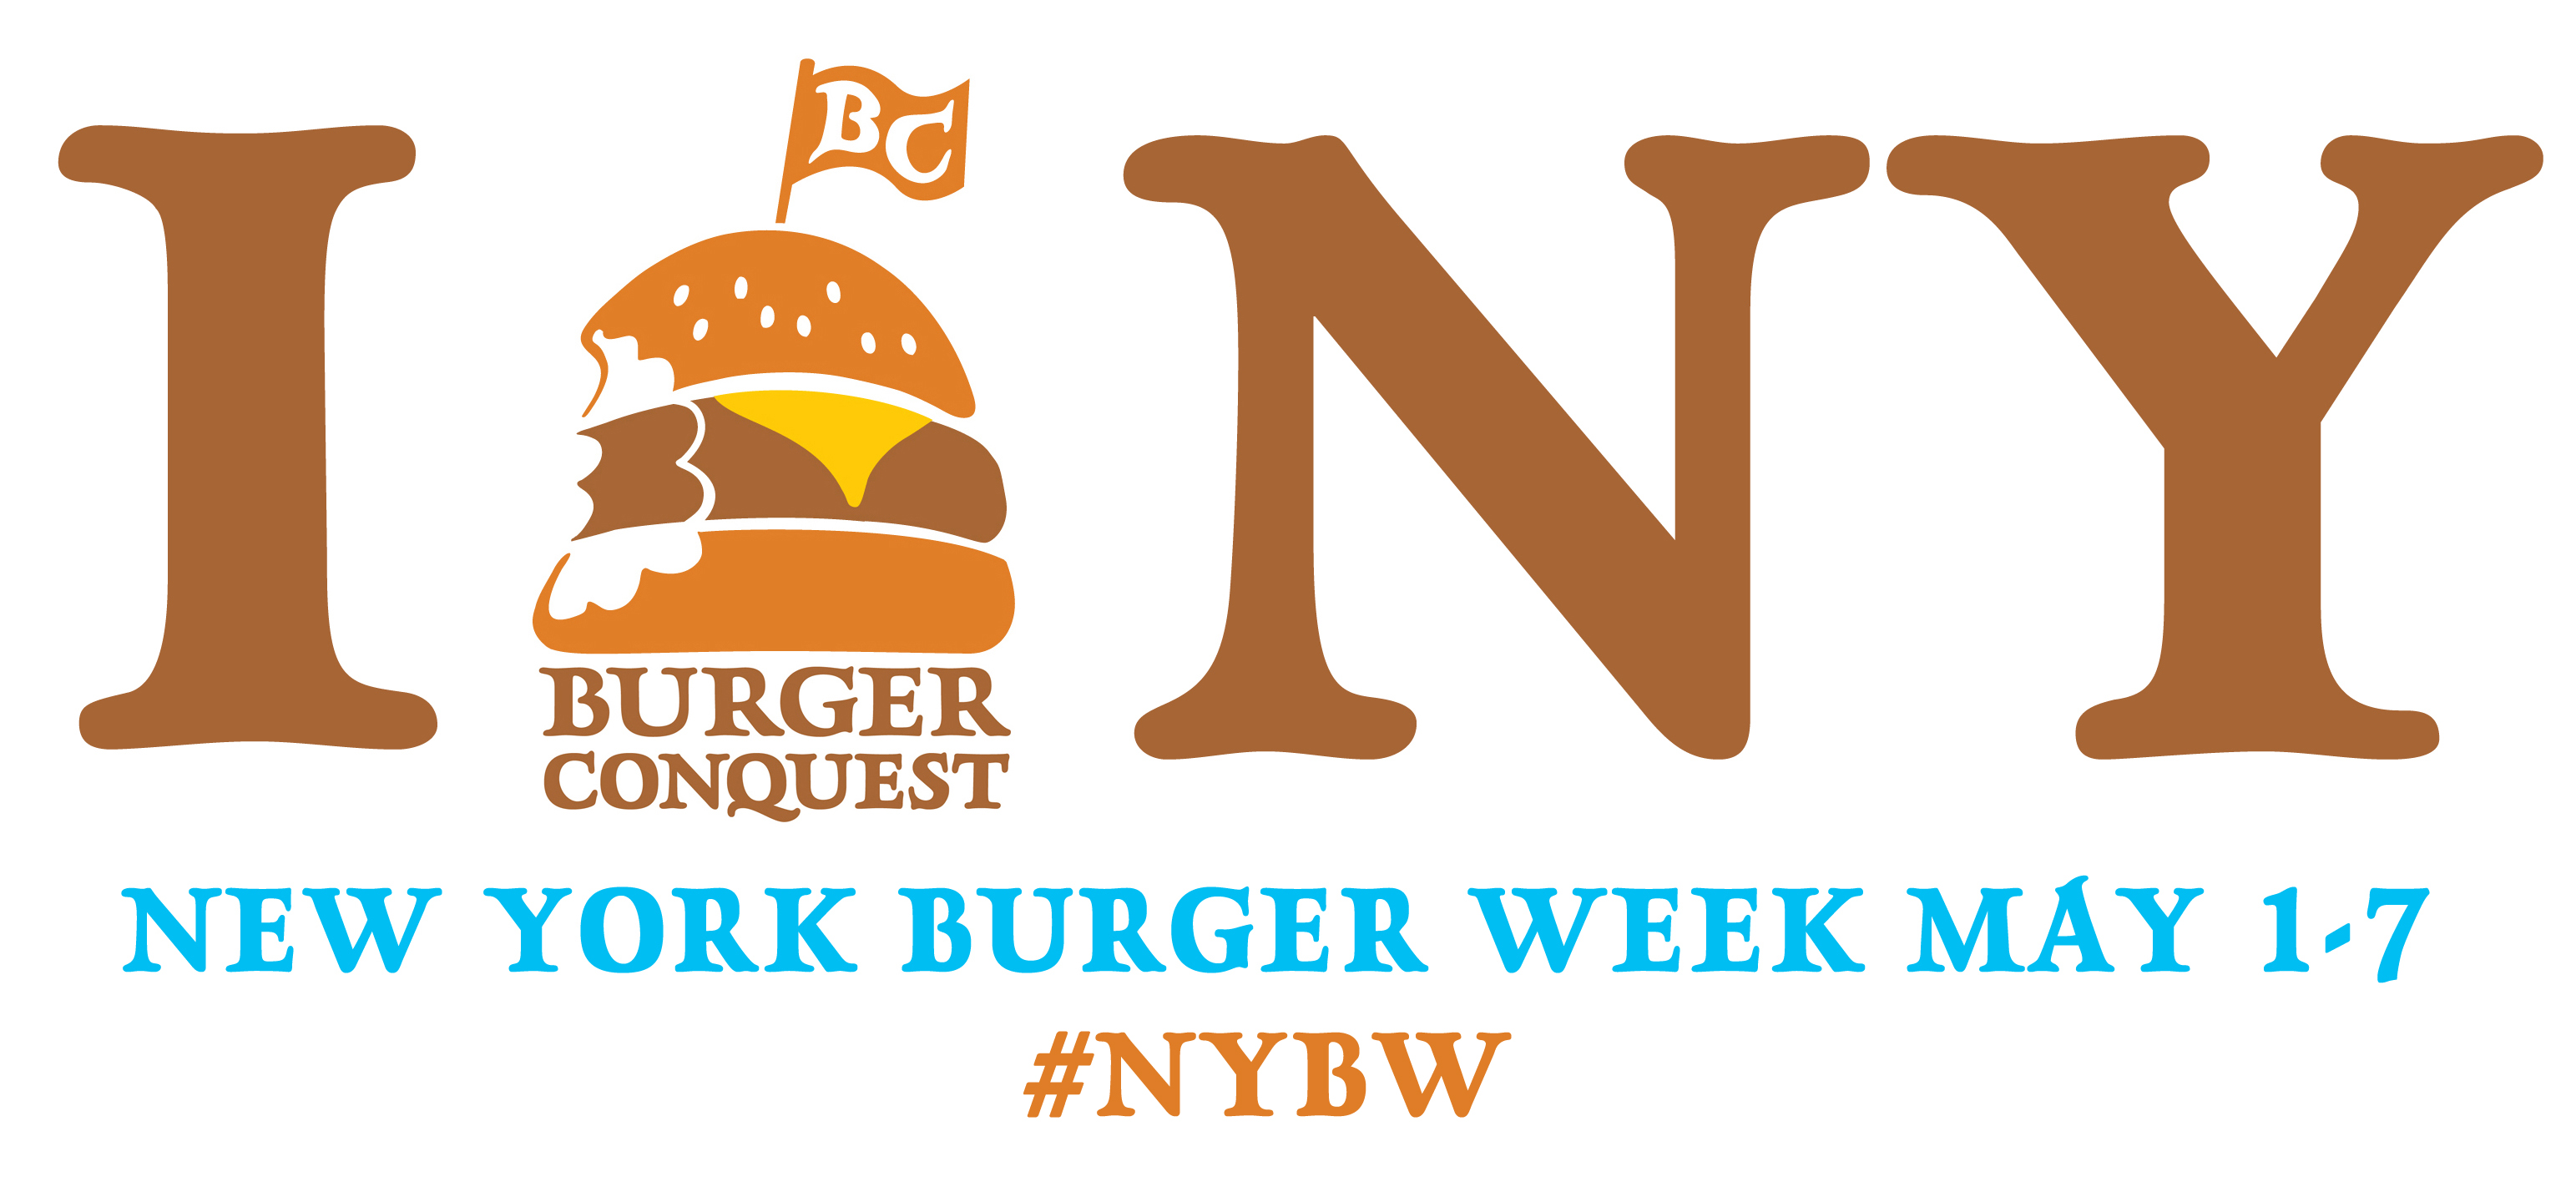 I BURGER NY HORIZONTAL RECTANGLE NYBW_ Final_Hashtag_2013